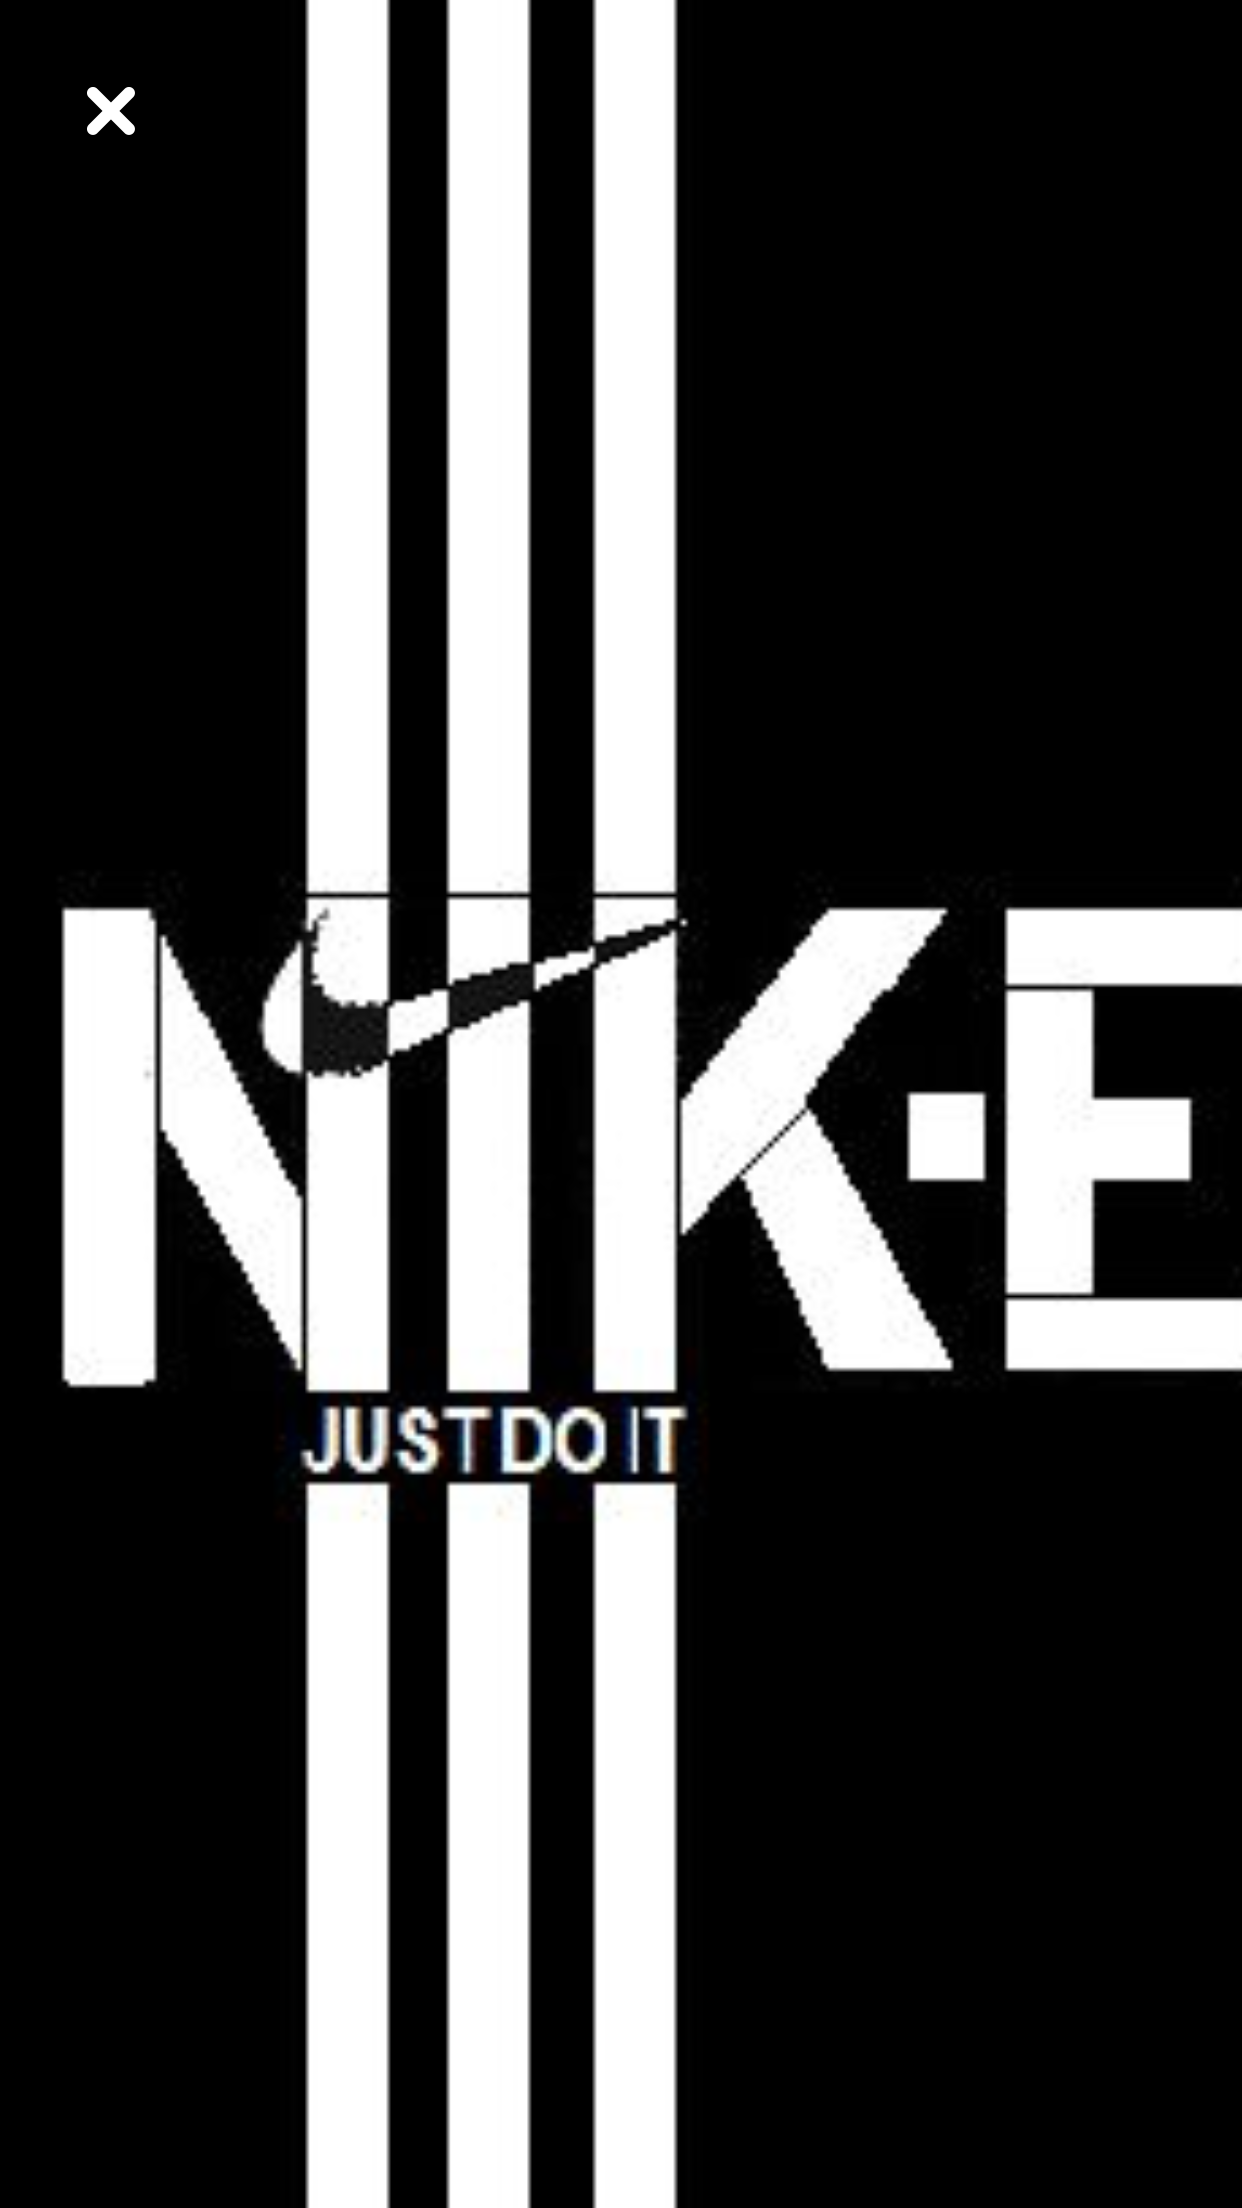 Nike (Just Do It) - Phone Wallpaper/Background/Screensaver ...